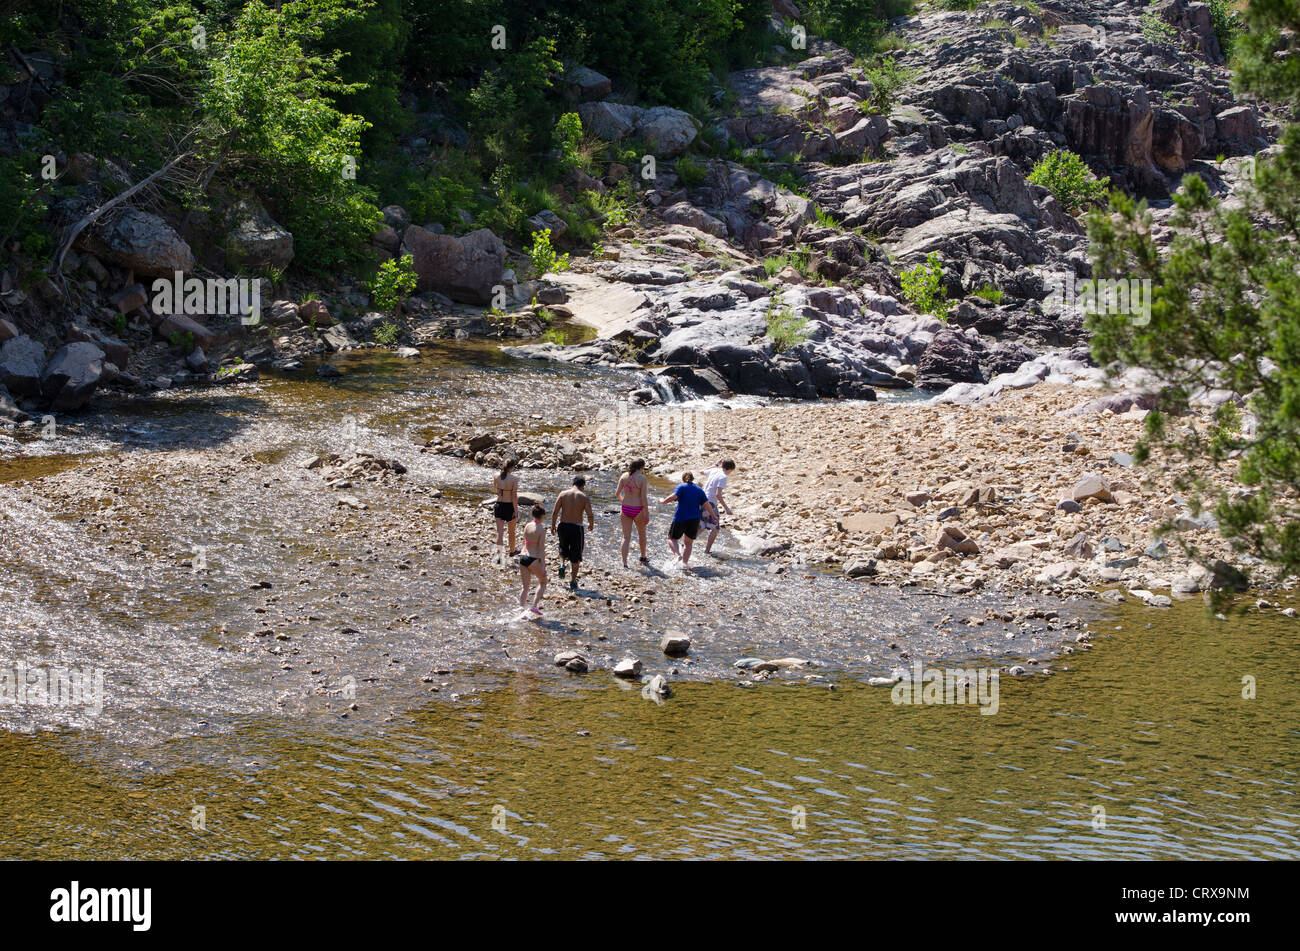 Johnson's Shut-ins State Park is one of the the most popular Missouri state parks. - Stock Image